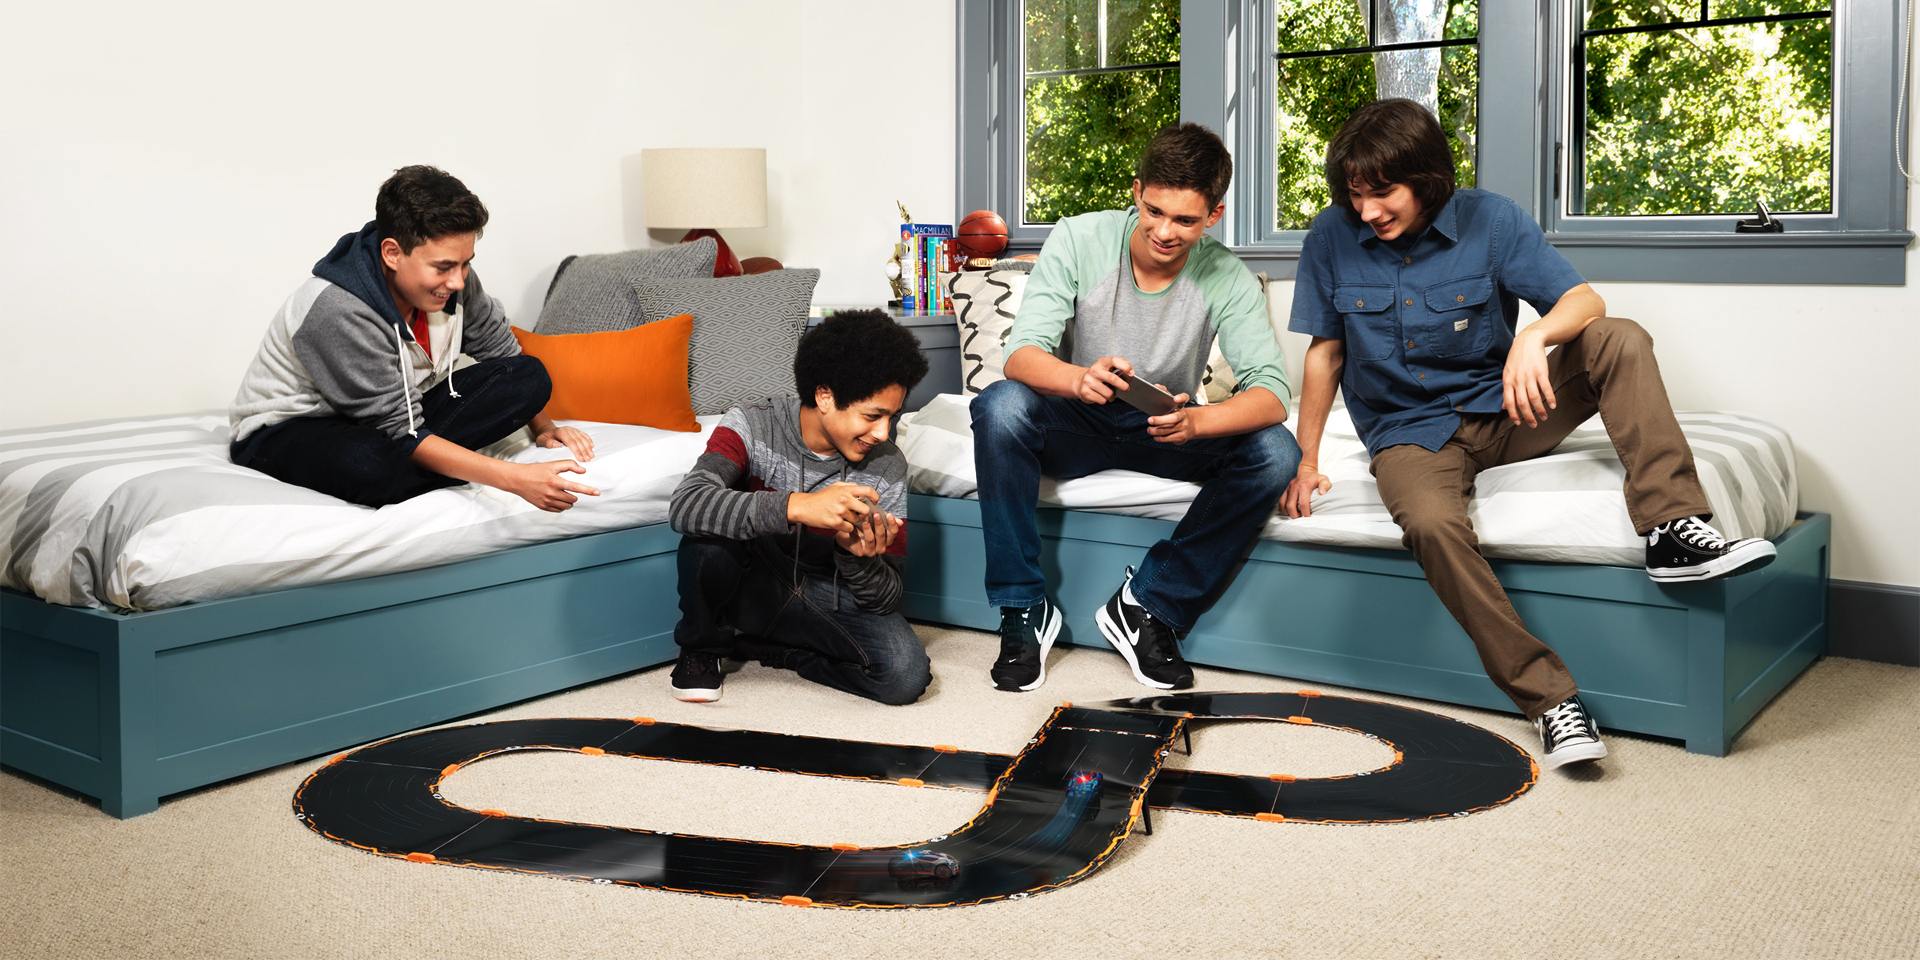 Anki Overdrive IOS or Android controllable Race Track Car Set